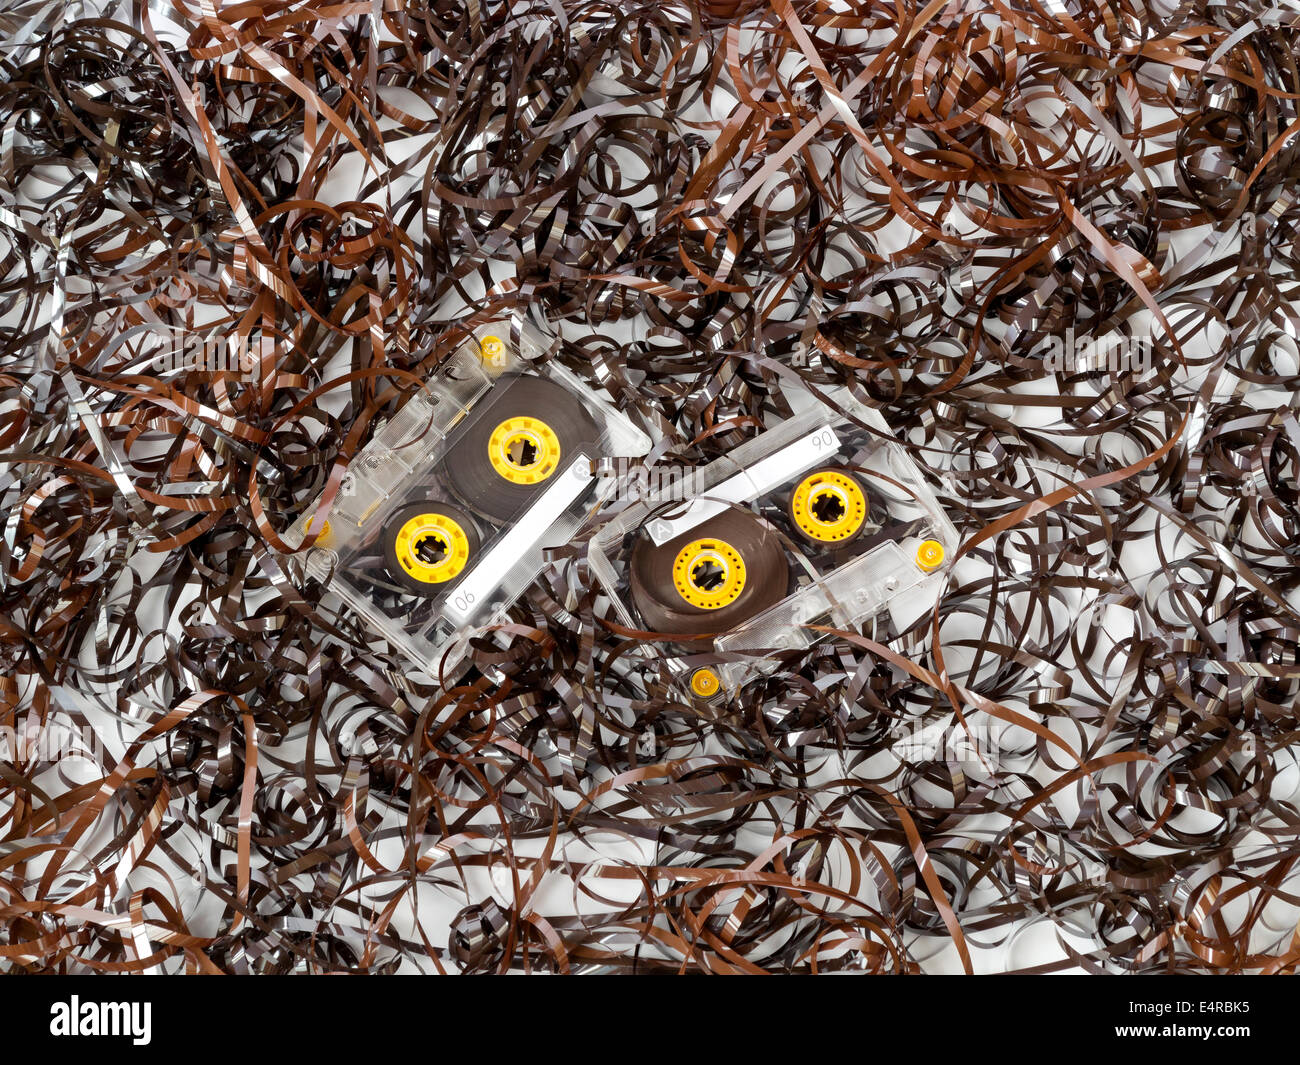 Two compact tape cassettes with blank labels and no branding in the midst of a mass of tangled and broken tape - Stock Image